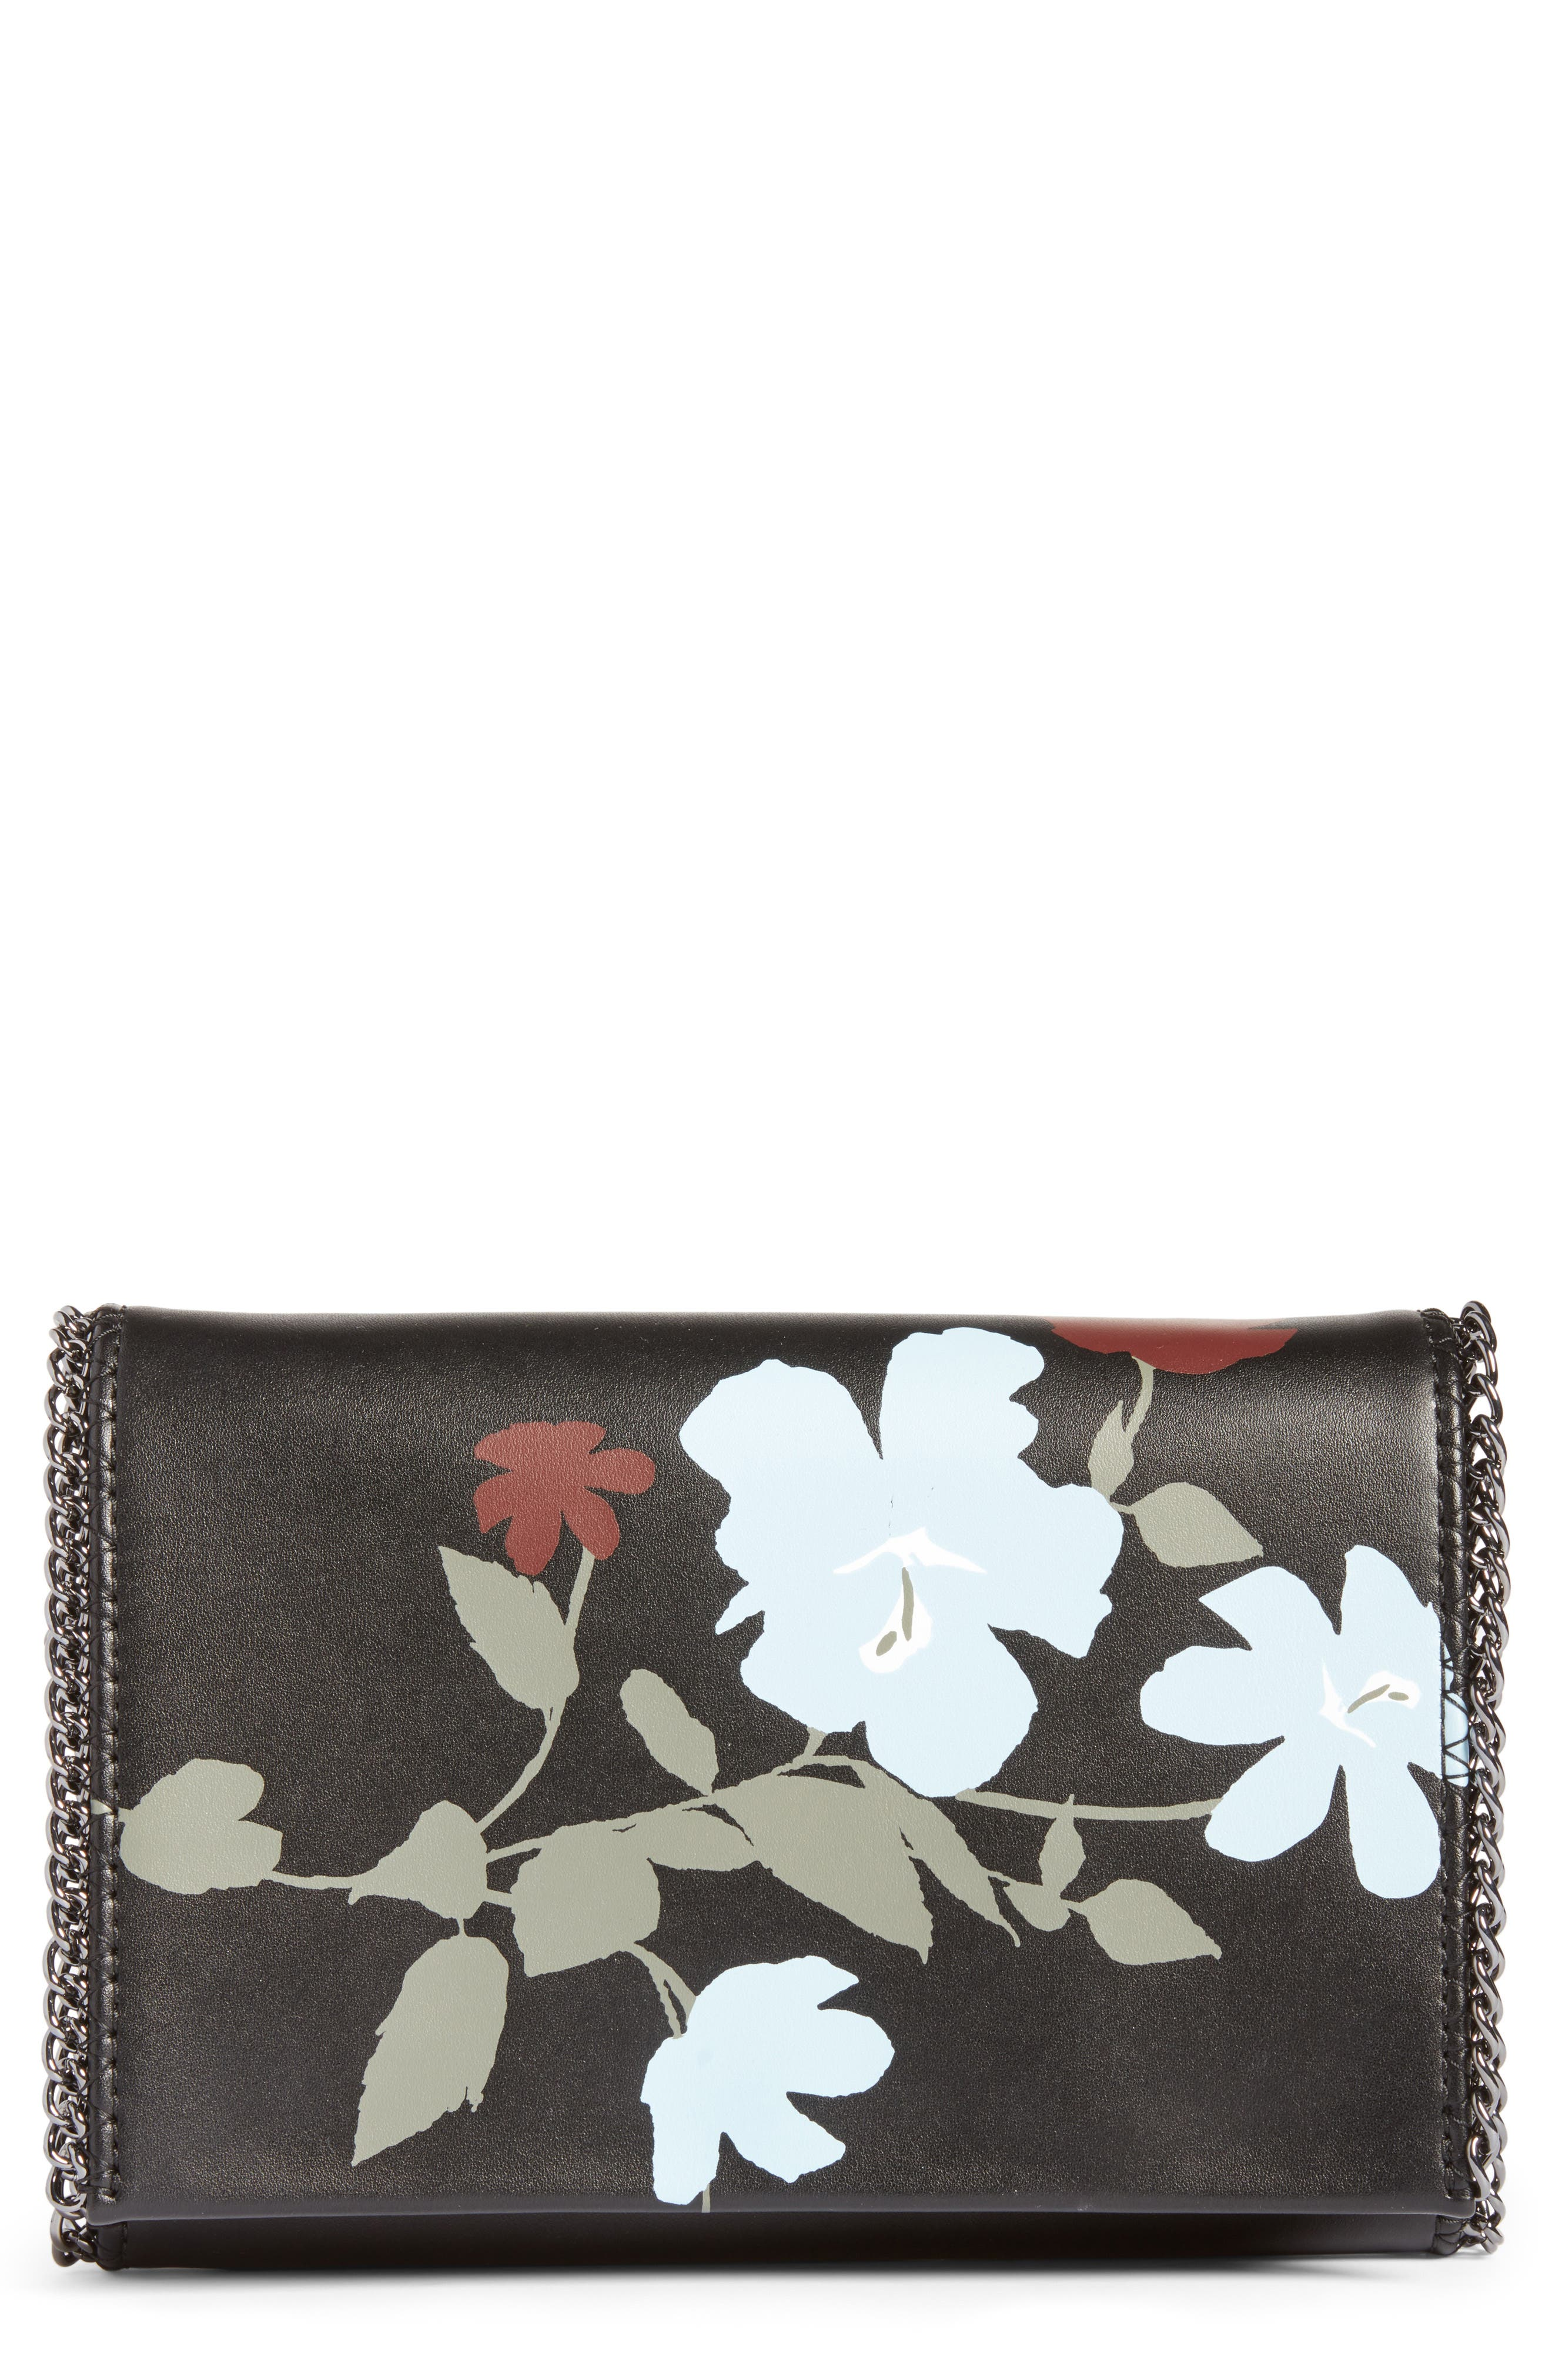 Alternate Image 1 Selected - Chelsea28 Fleur Faux Leather Clutch